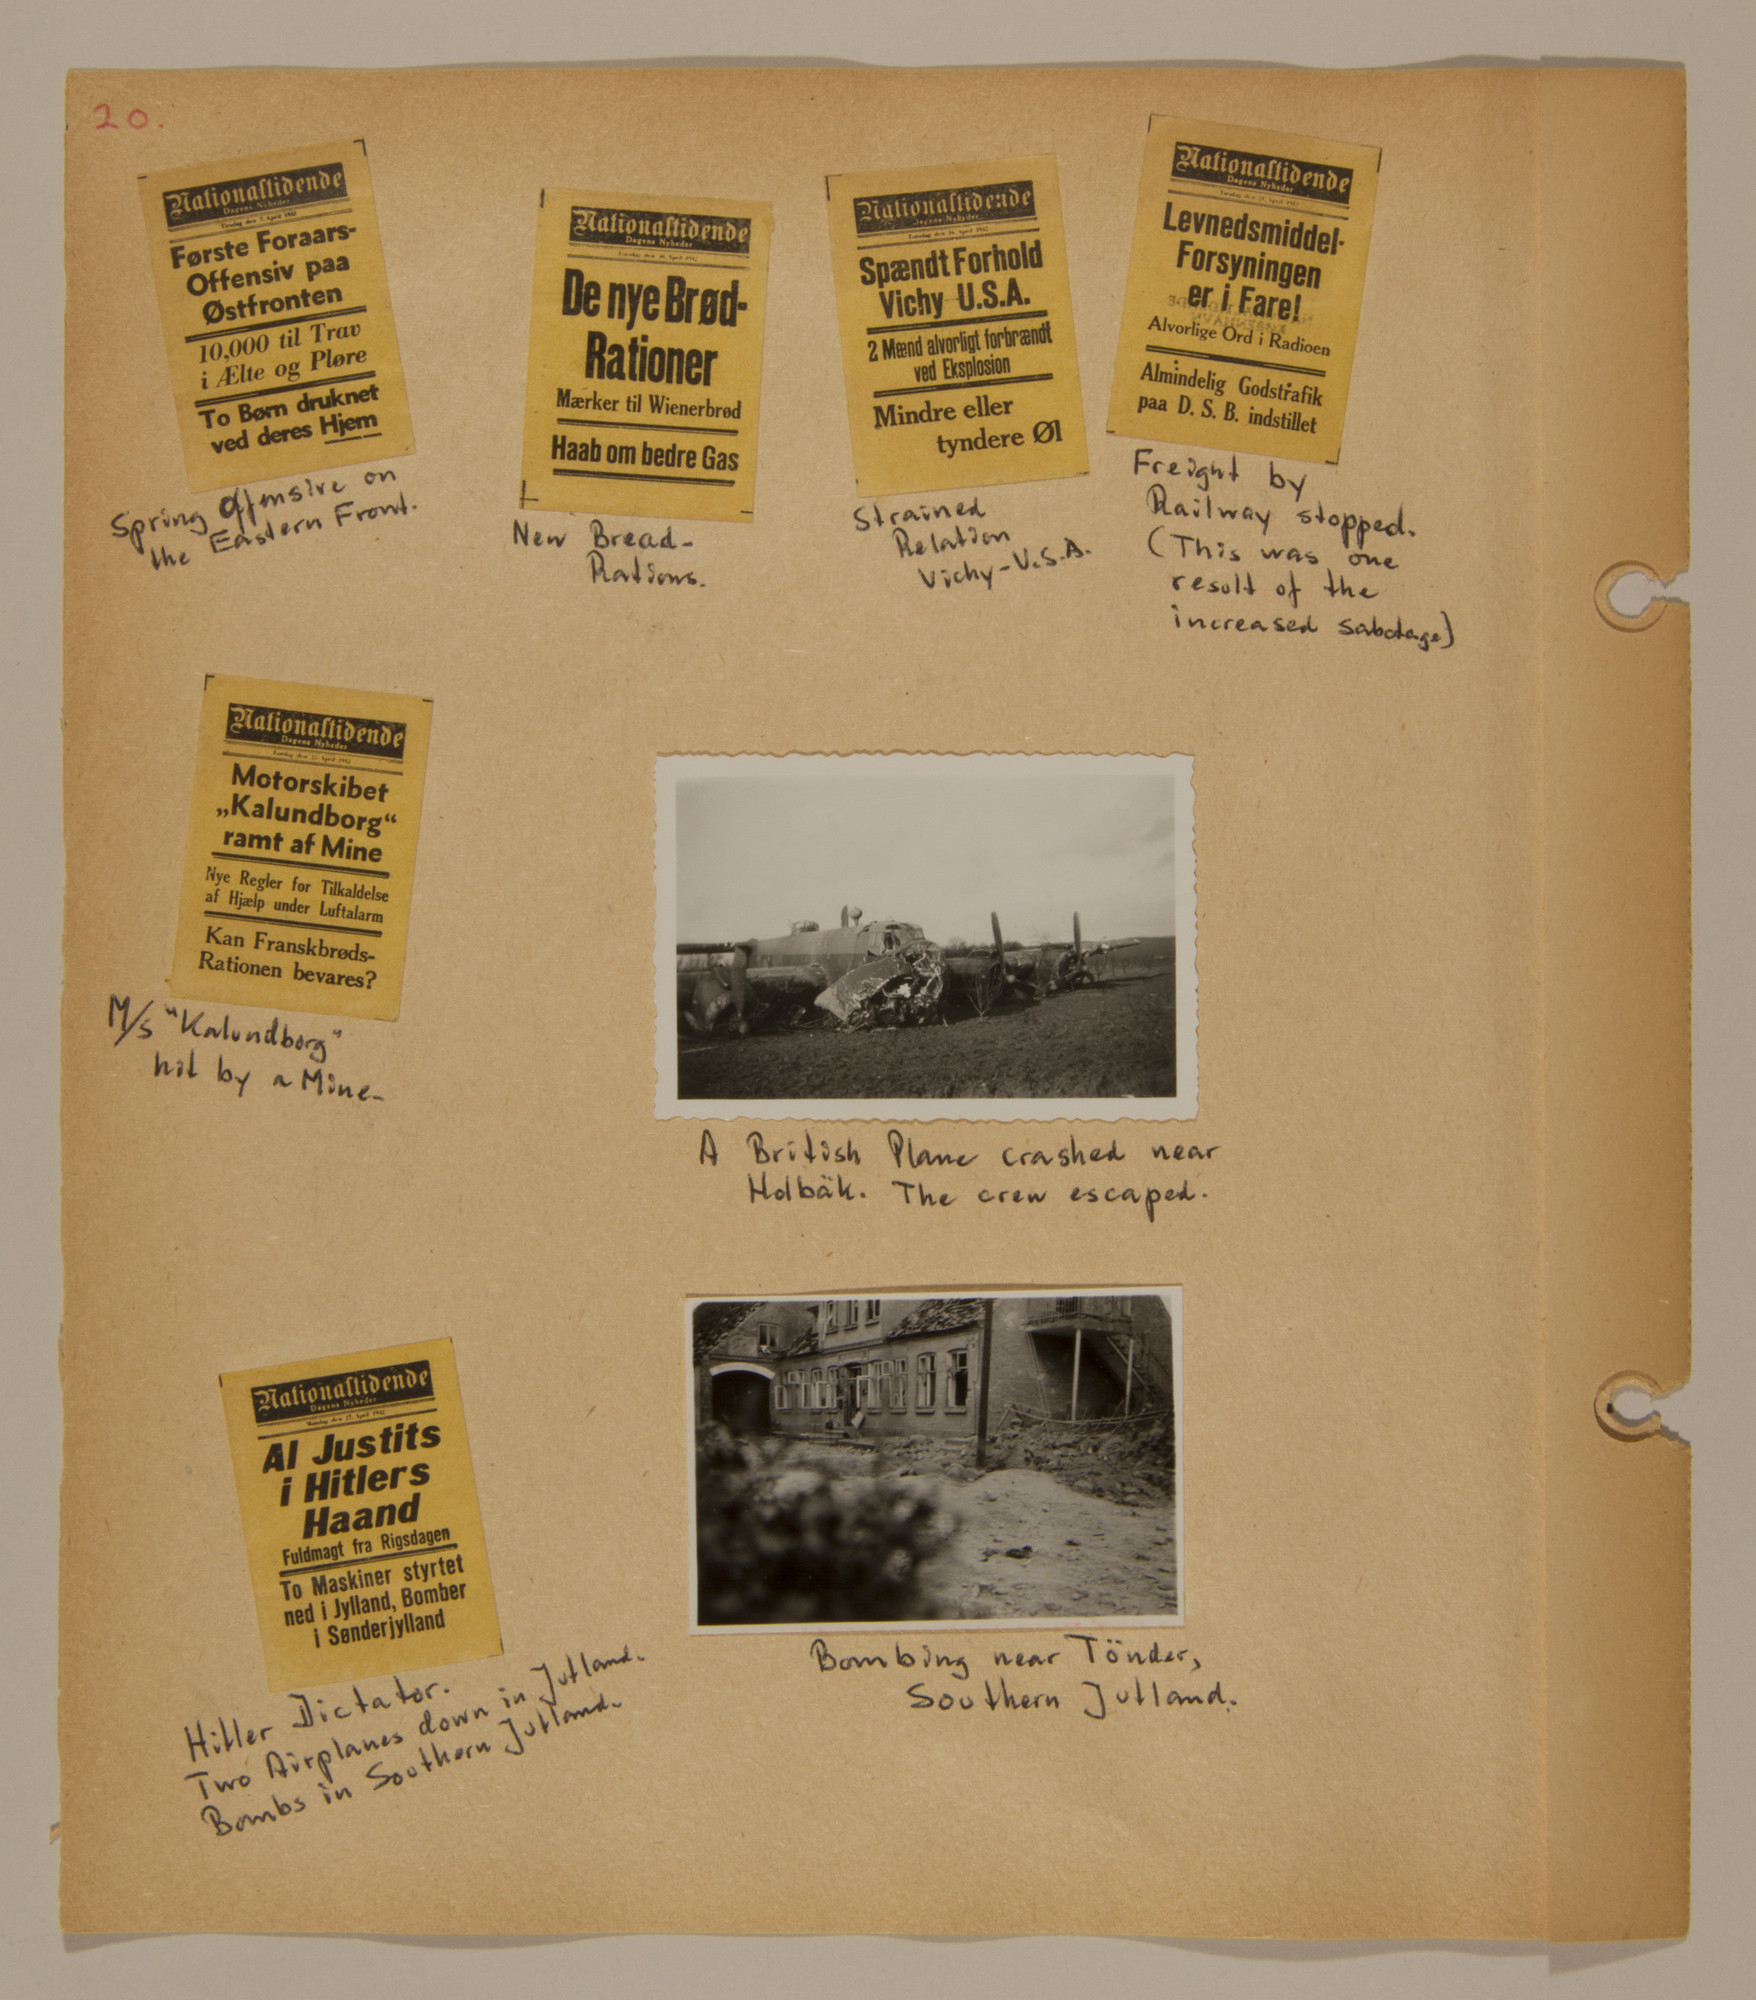 Page from volume two of a set of scrapbooks compiled by Bjorn Sibbern, a Danish policeman and resistance member, documenting the German occupation of Denmark.  This page contains more newspaper headlines from 1942.